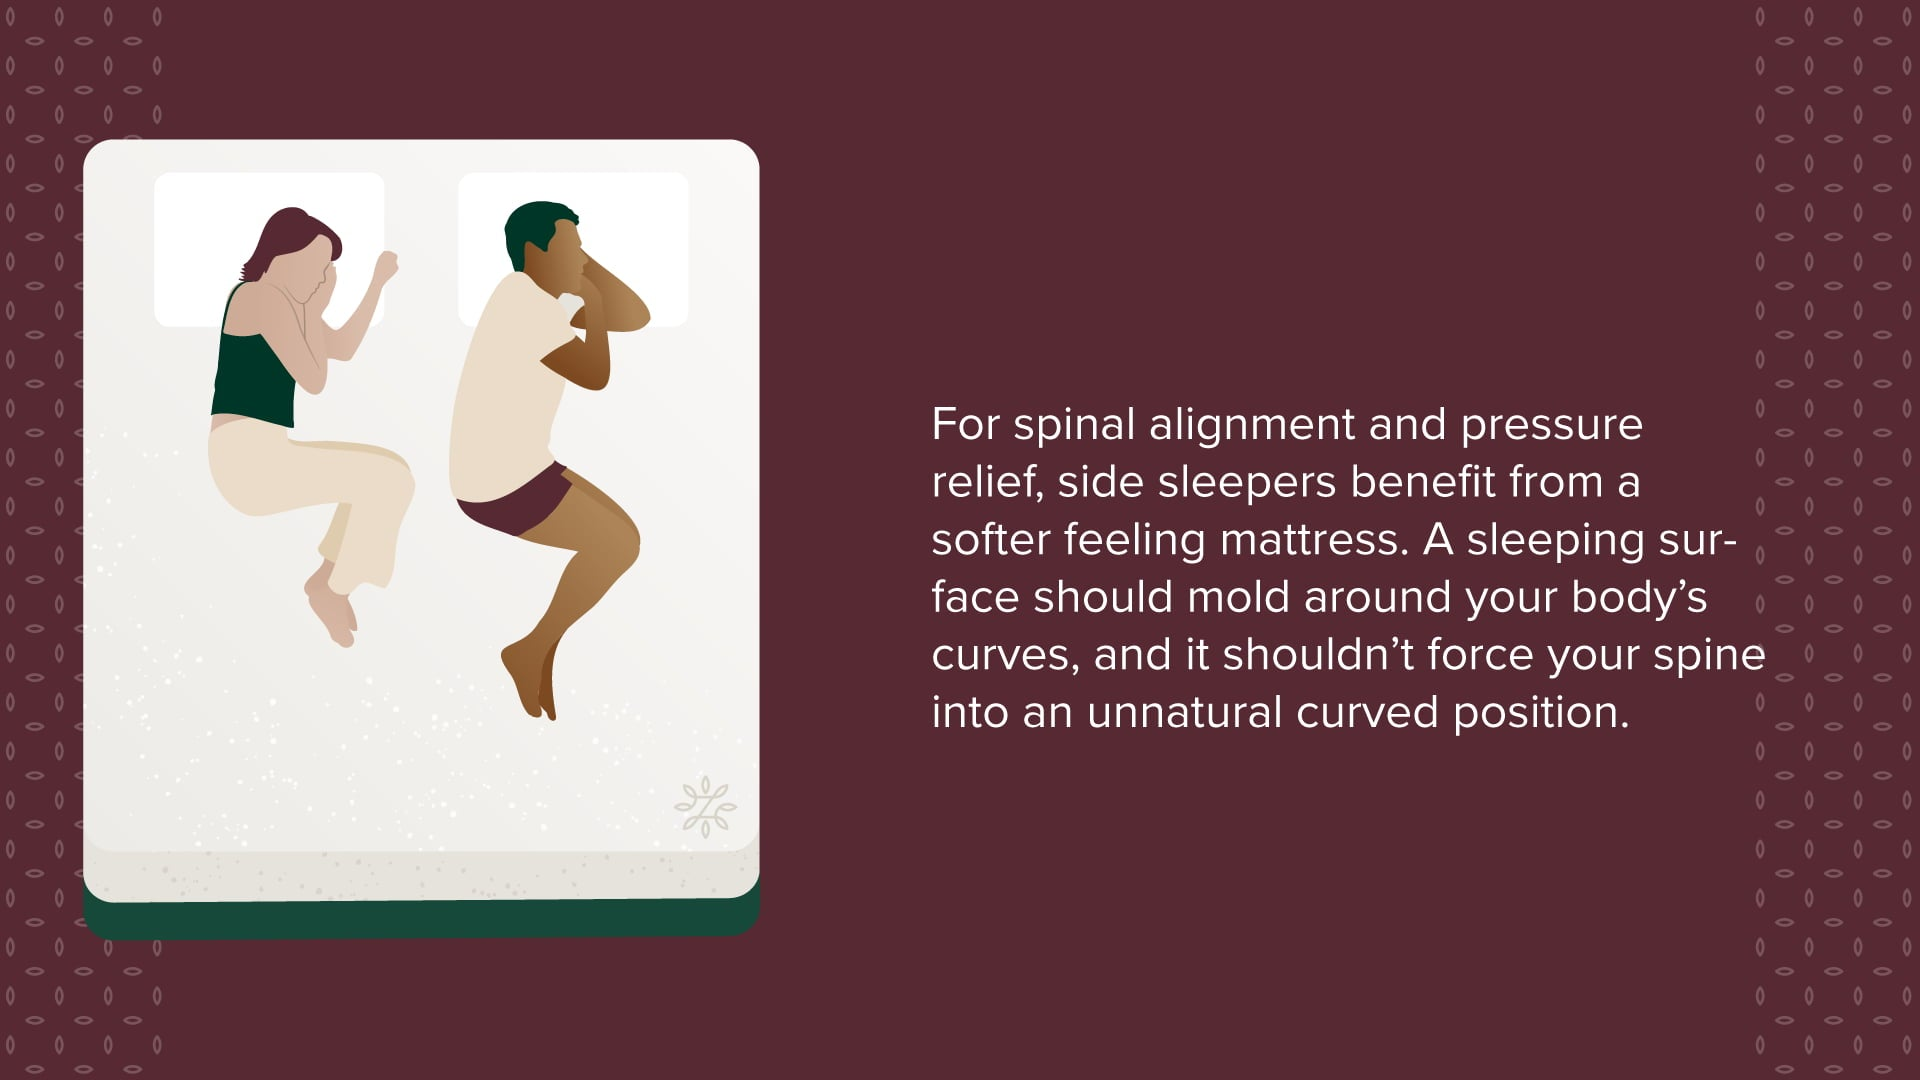 For spinal alignment and pressure-relief, side sleepers benefit from a softer feeling mattress